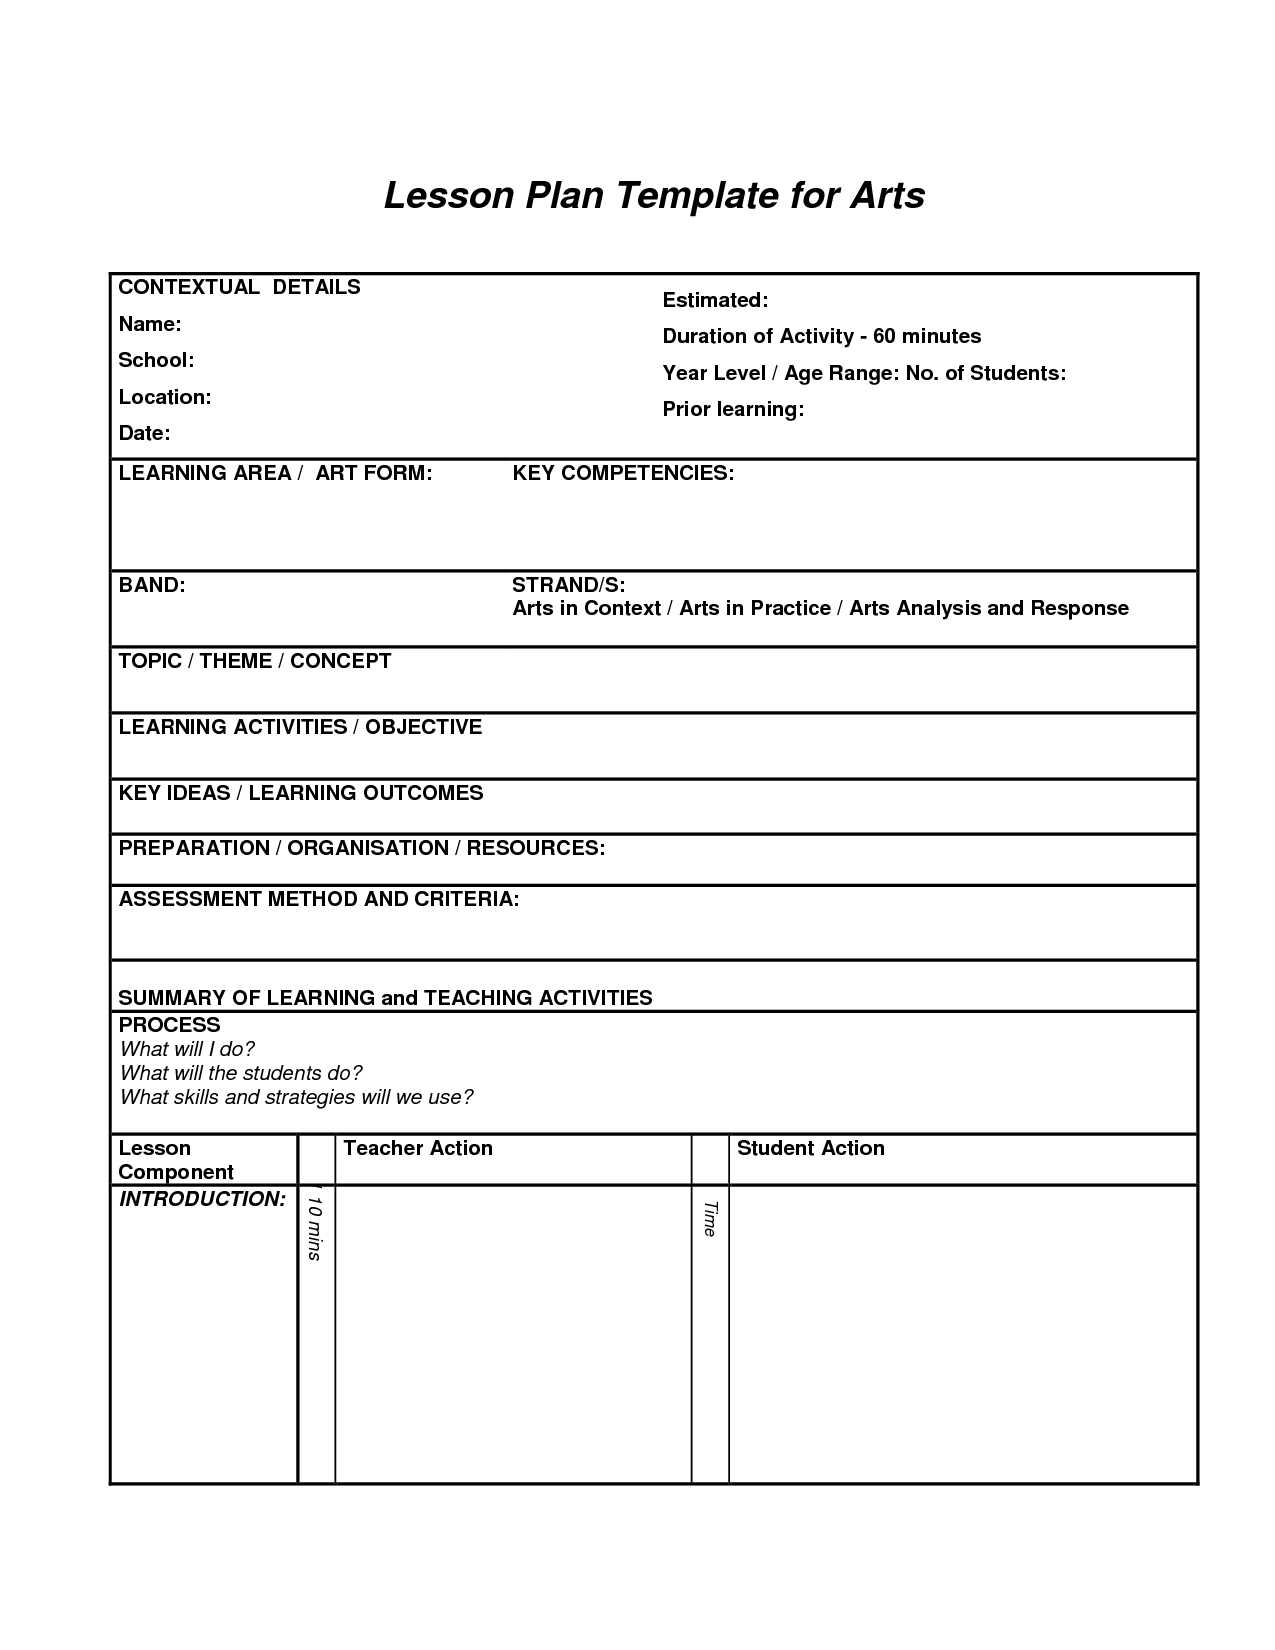 project activity plan template - lesson plan template for arts art education essentials